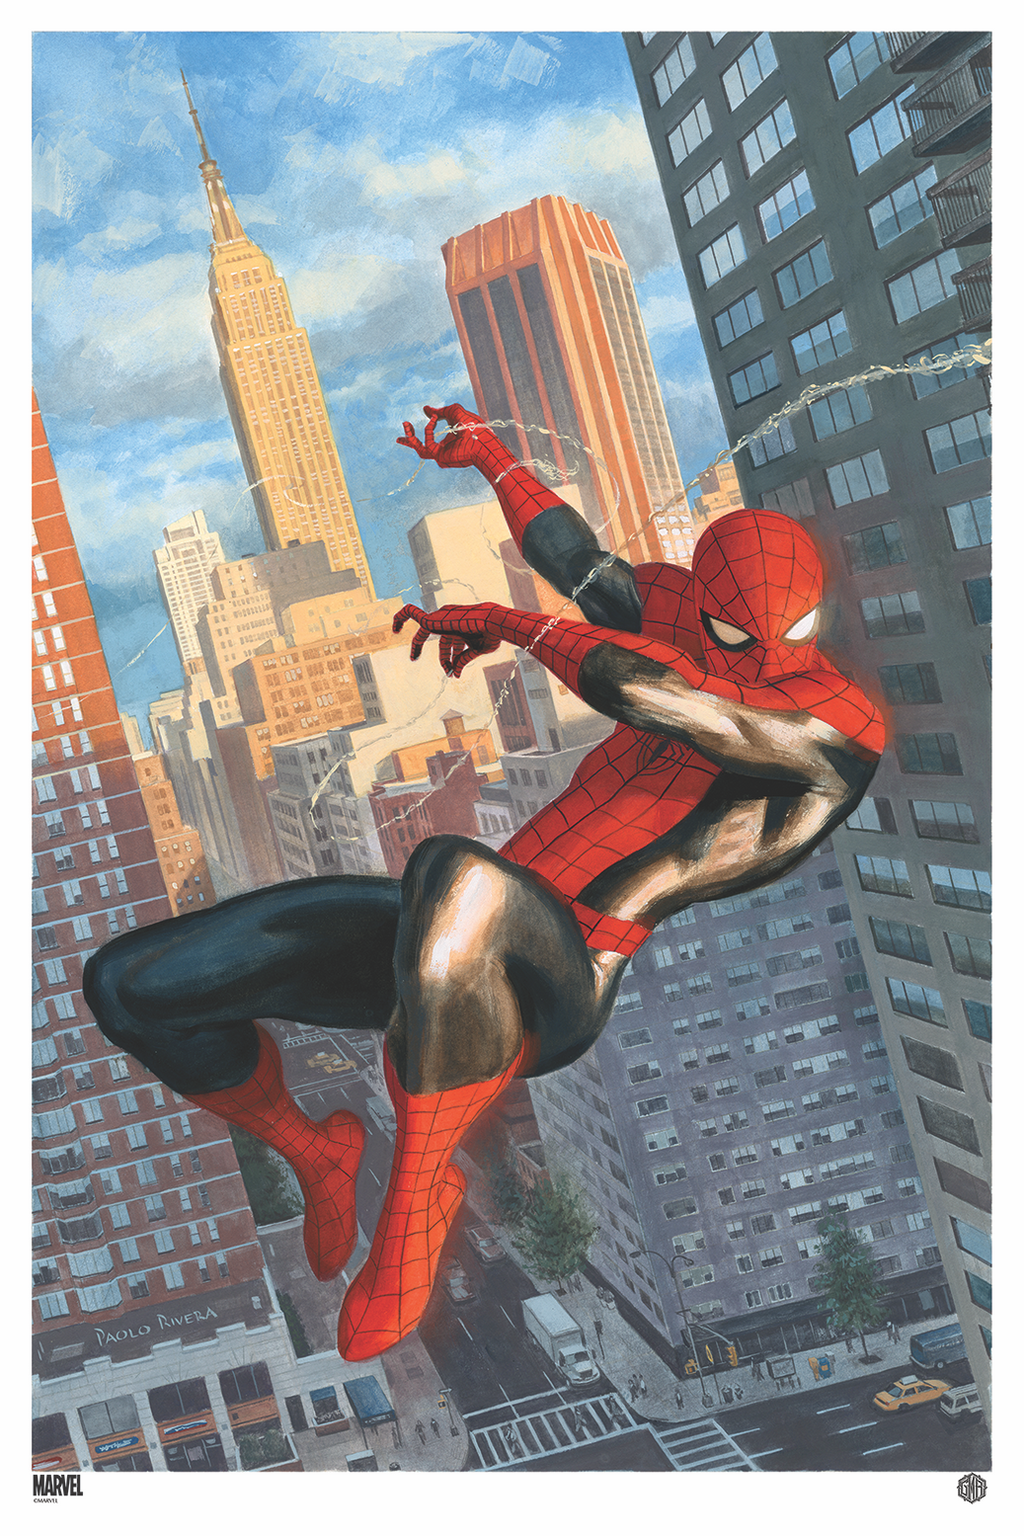 """The Amazing Spider-Man #646"" Variant - Officially Licensed & Limited Edition - Marvel Comics Poster Art By Paolo Rivera"